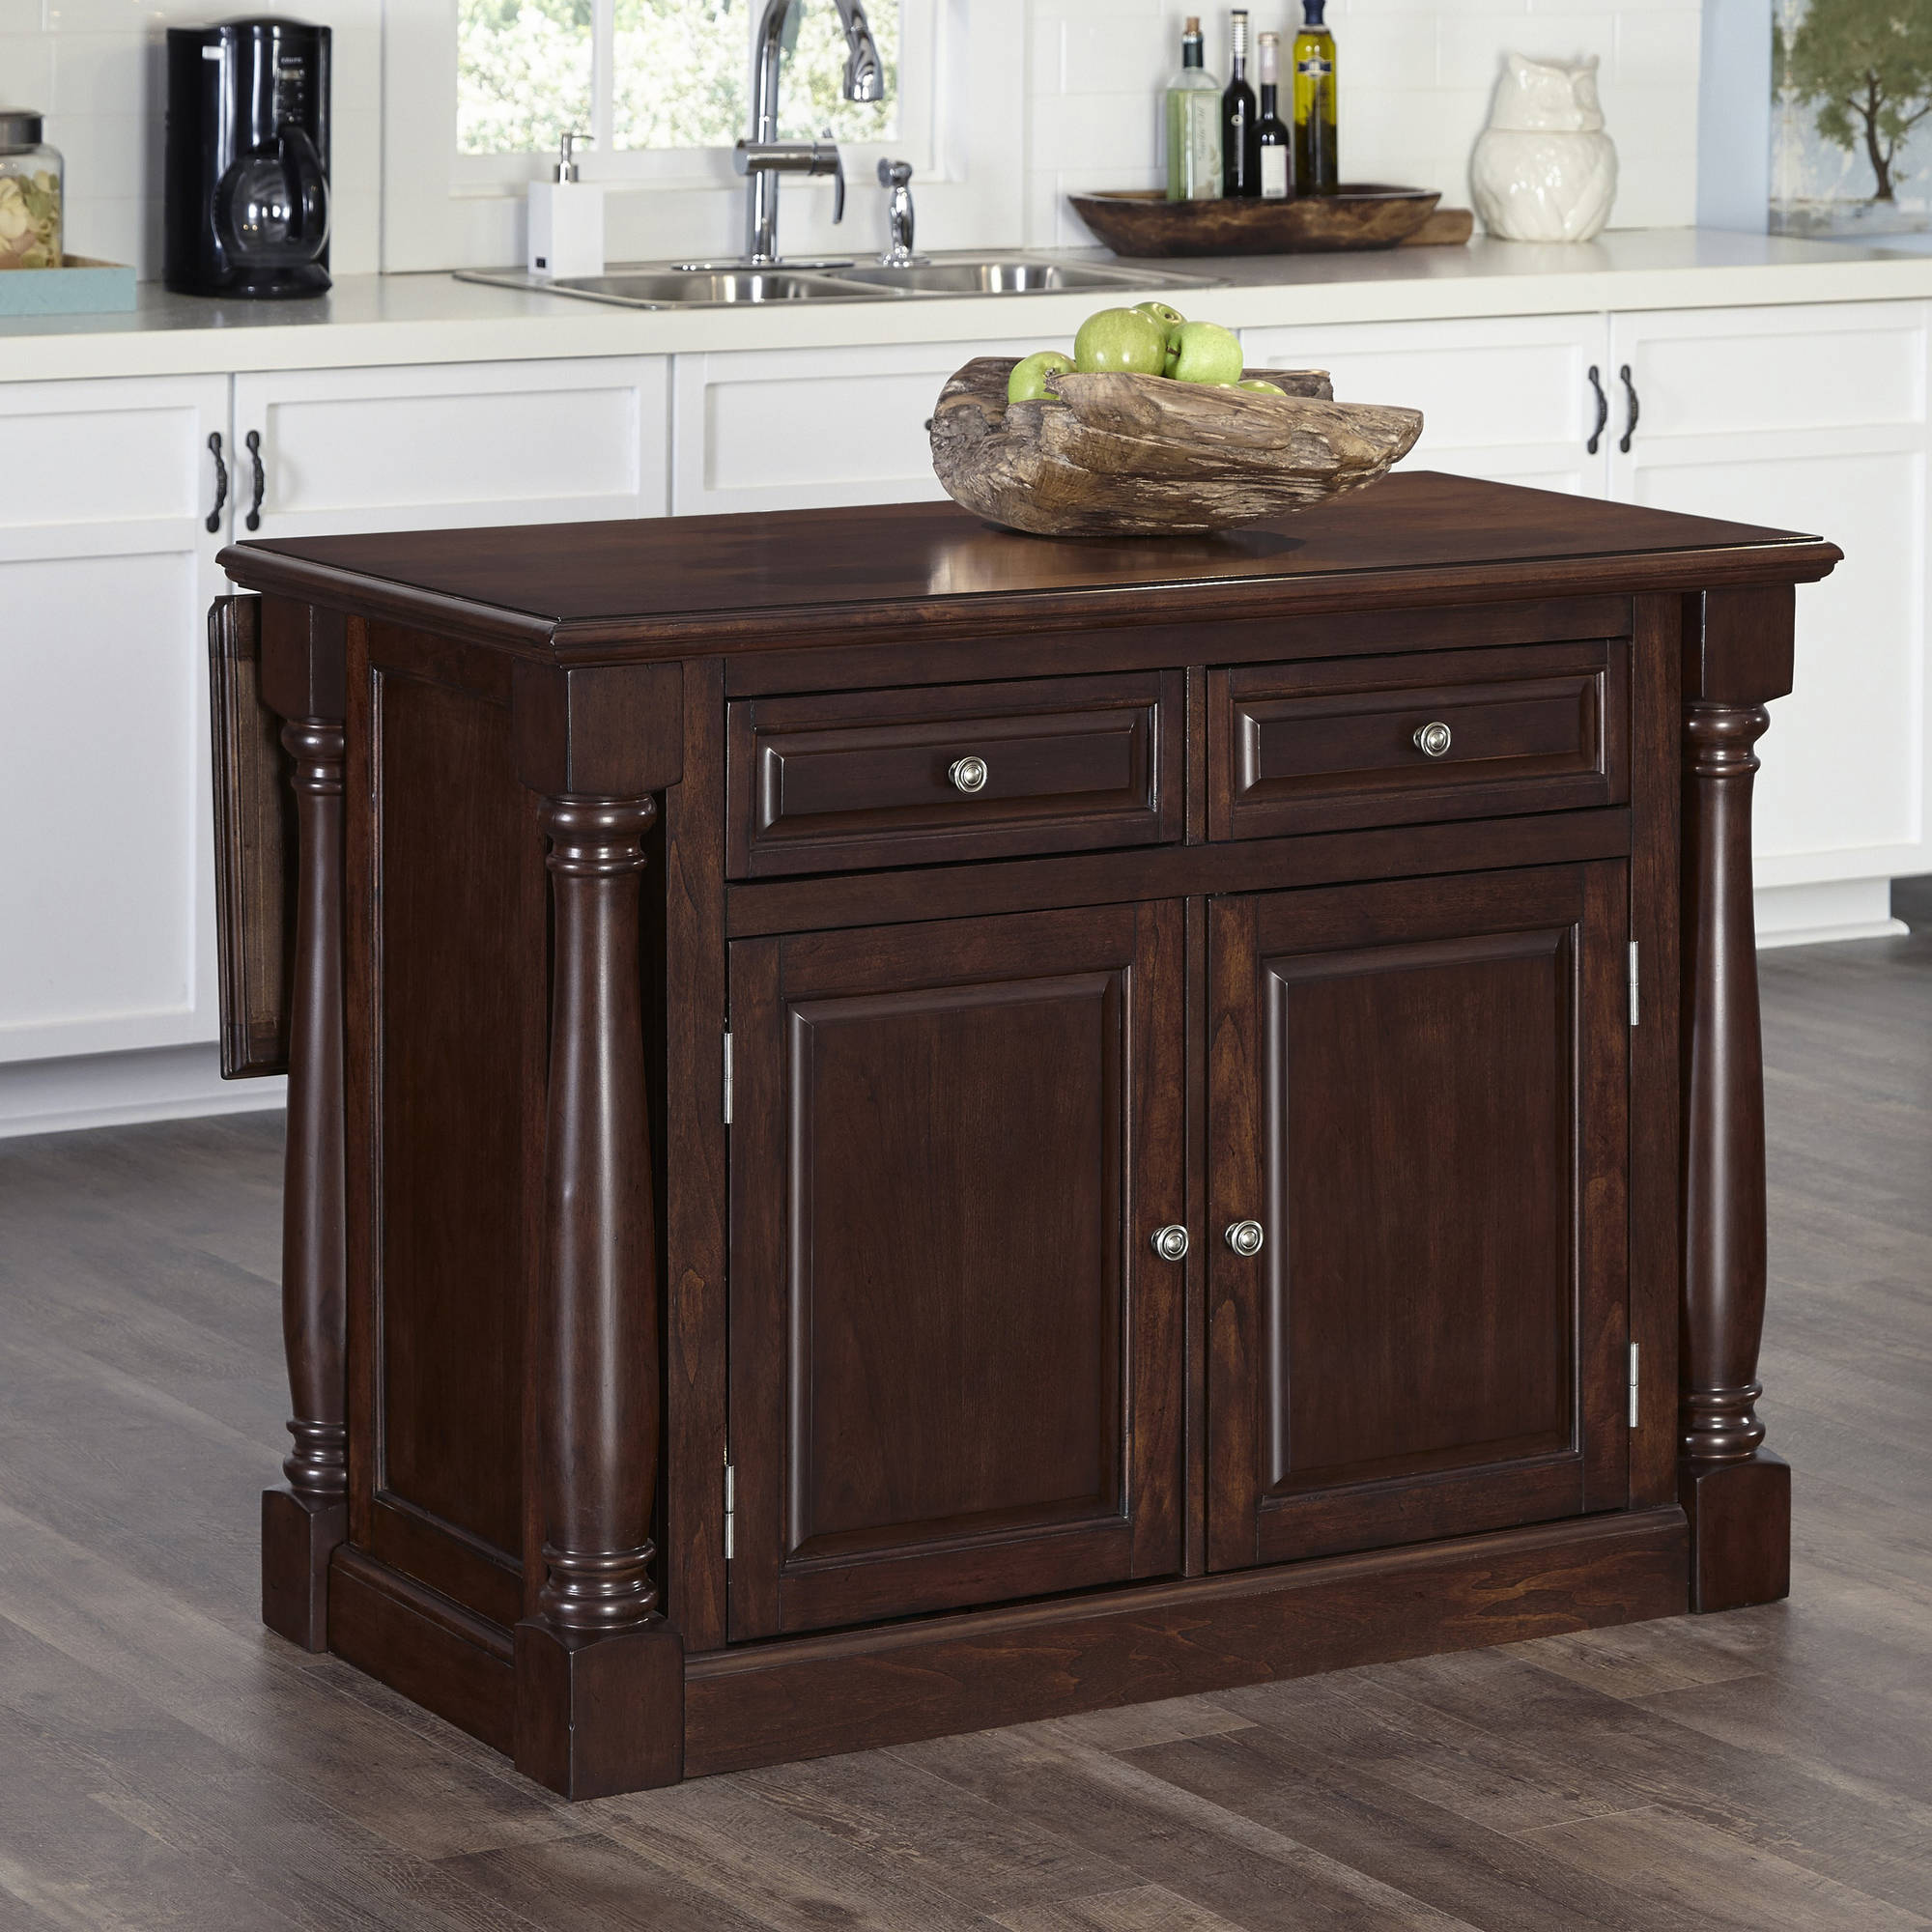 cherry kitchen islands kitchen island with wood top in cherry finish walmart 10982